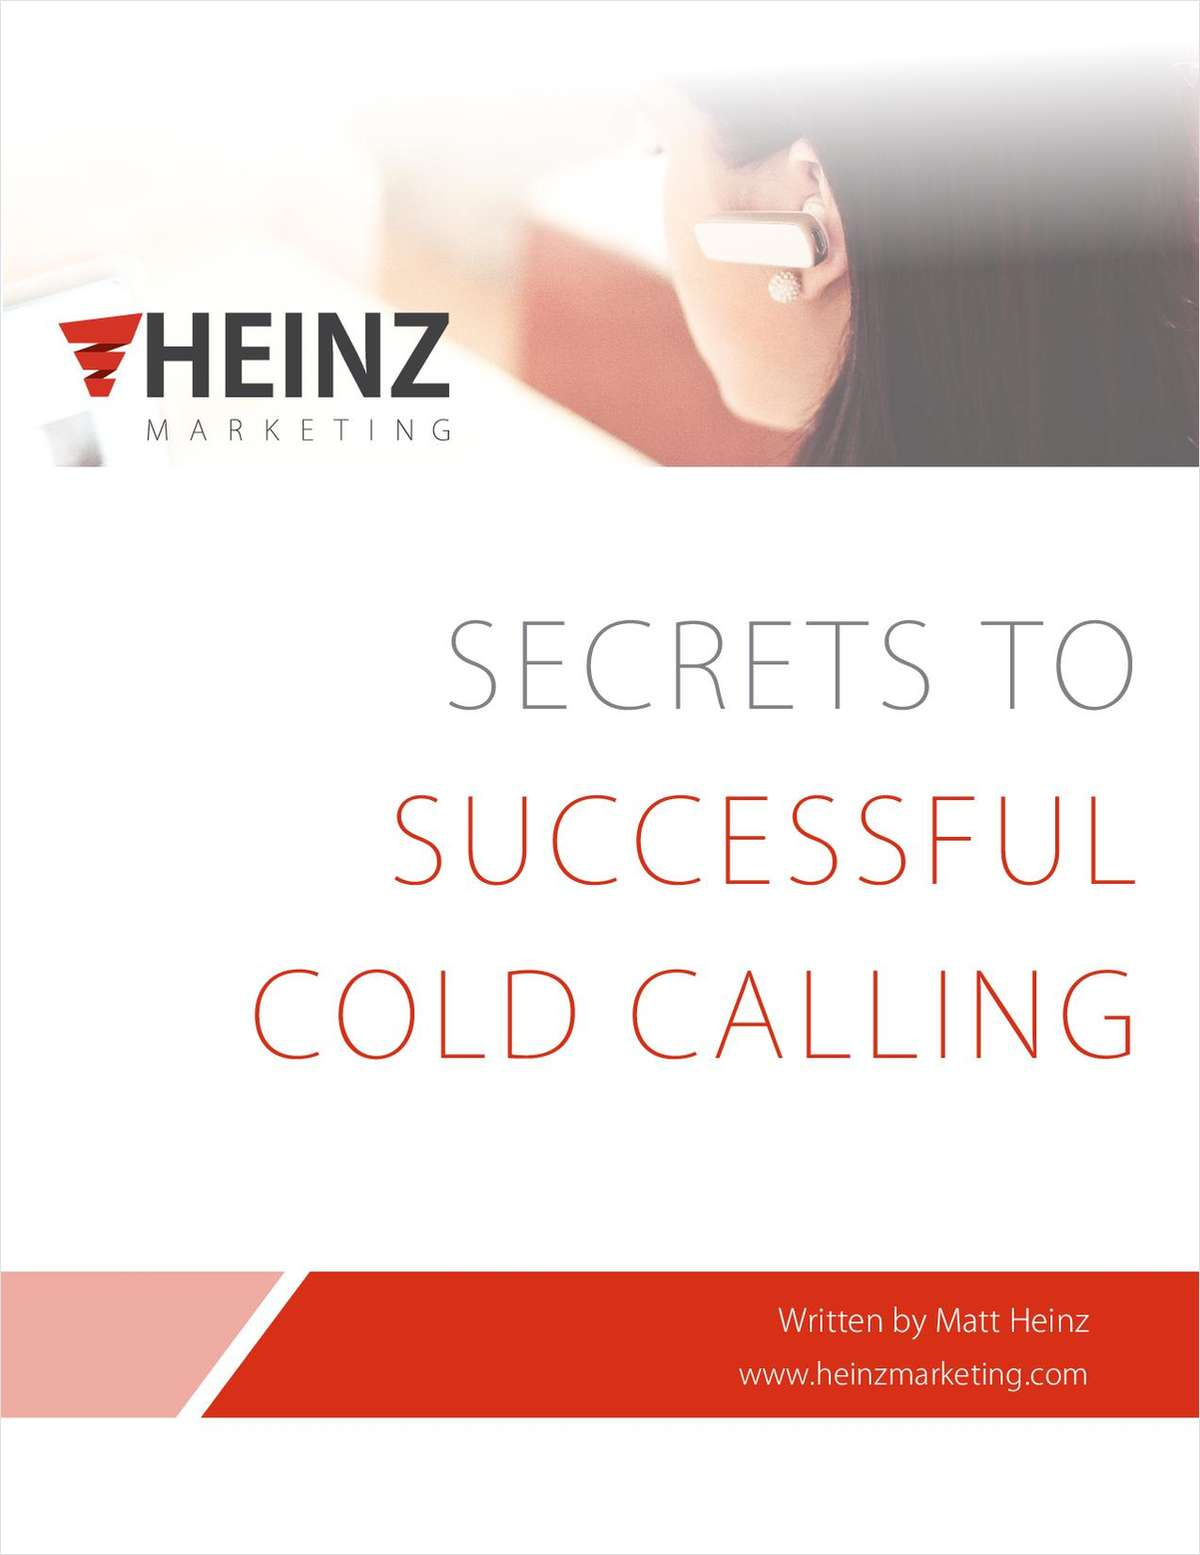 Secrets to Successful Cold Calling